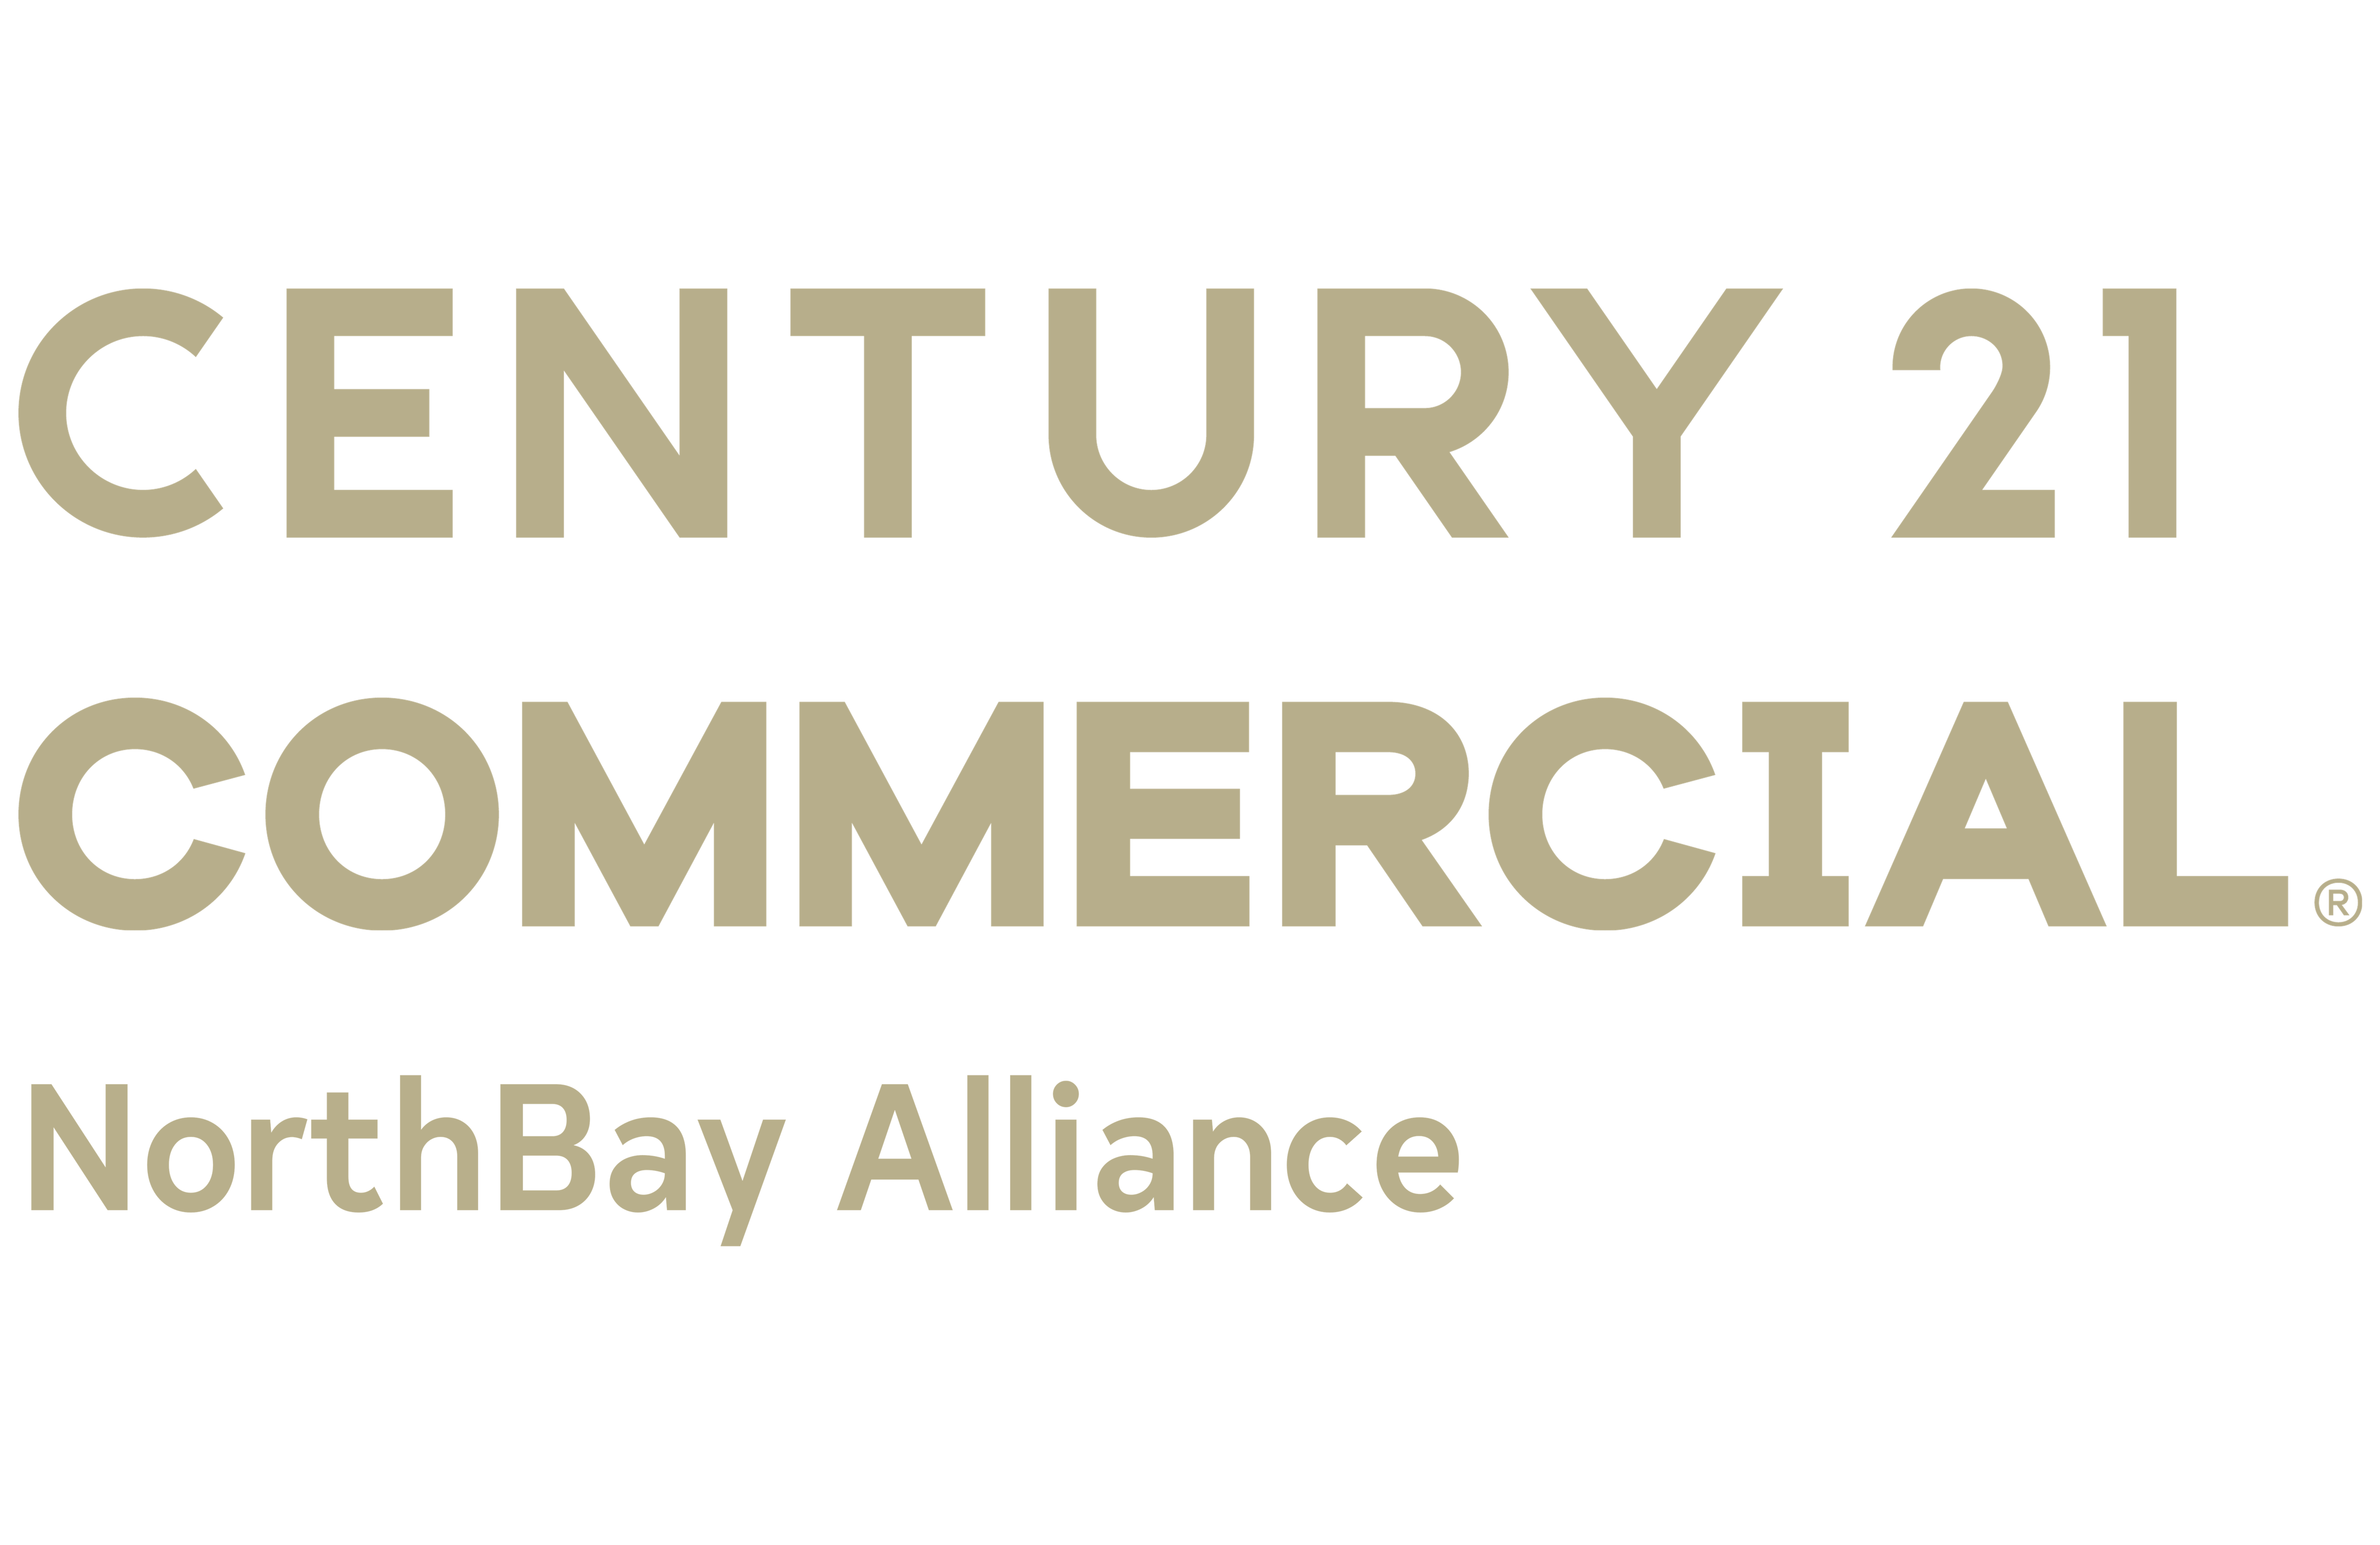 CENTURY 21 NorthBay Alliance